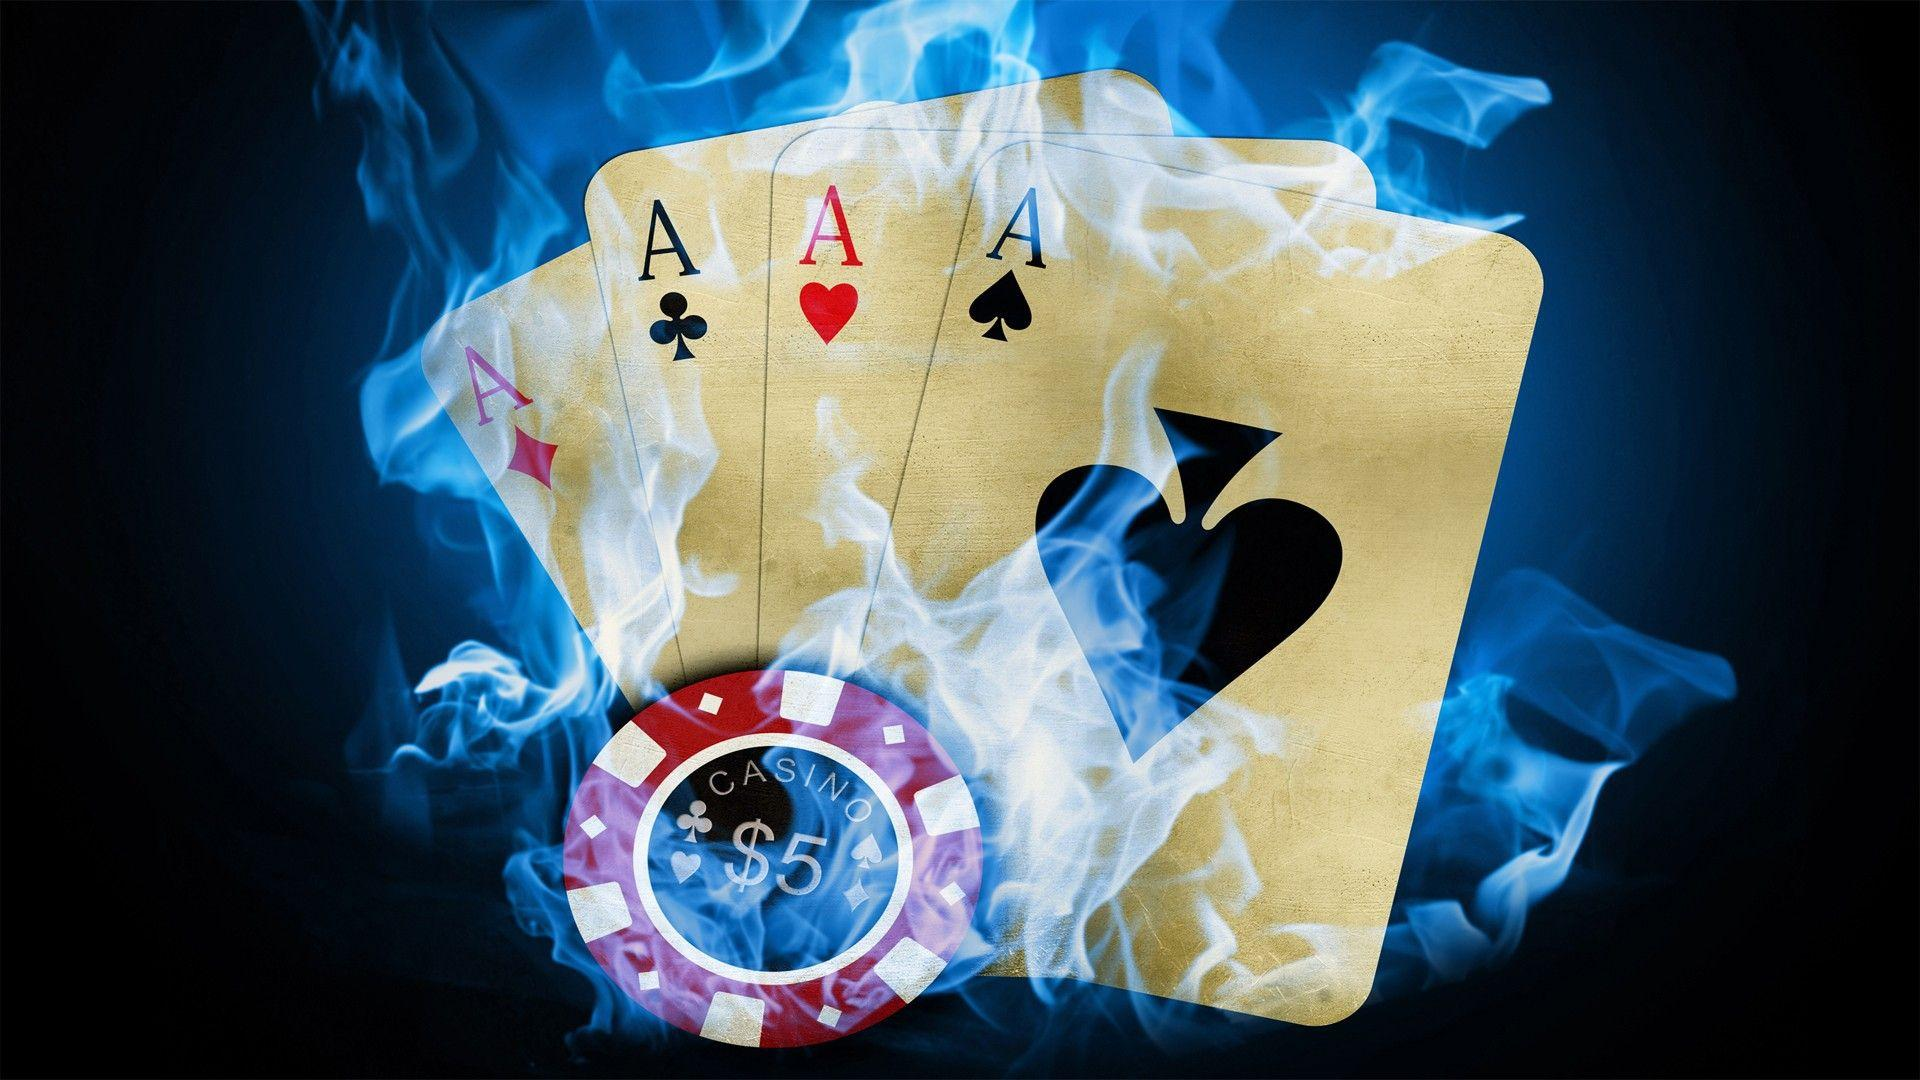 Could you find out how I Cured My Casino In 2 Days?